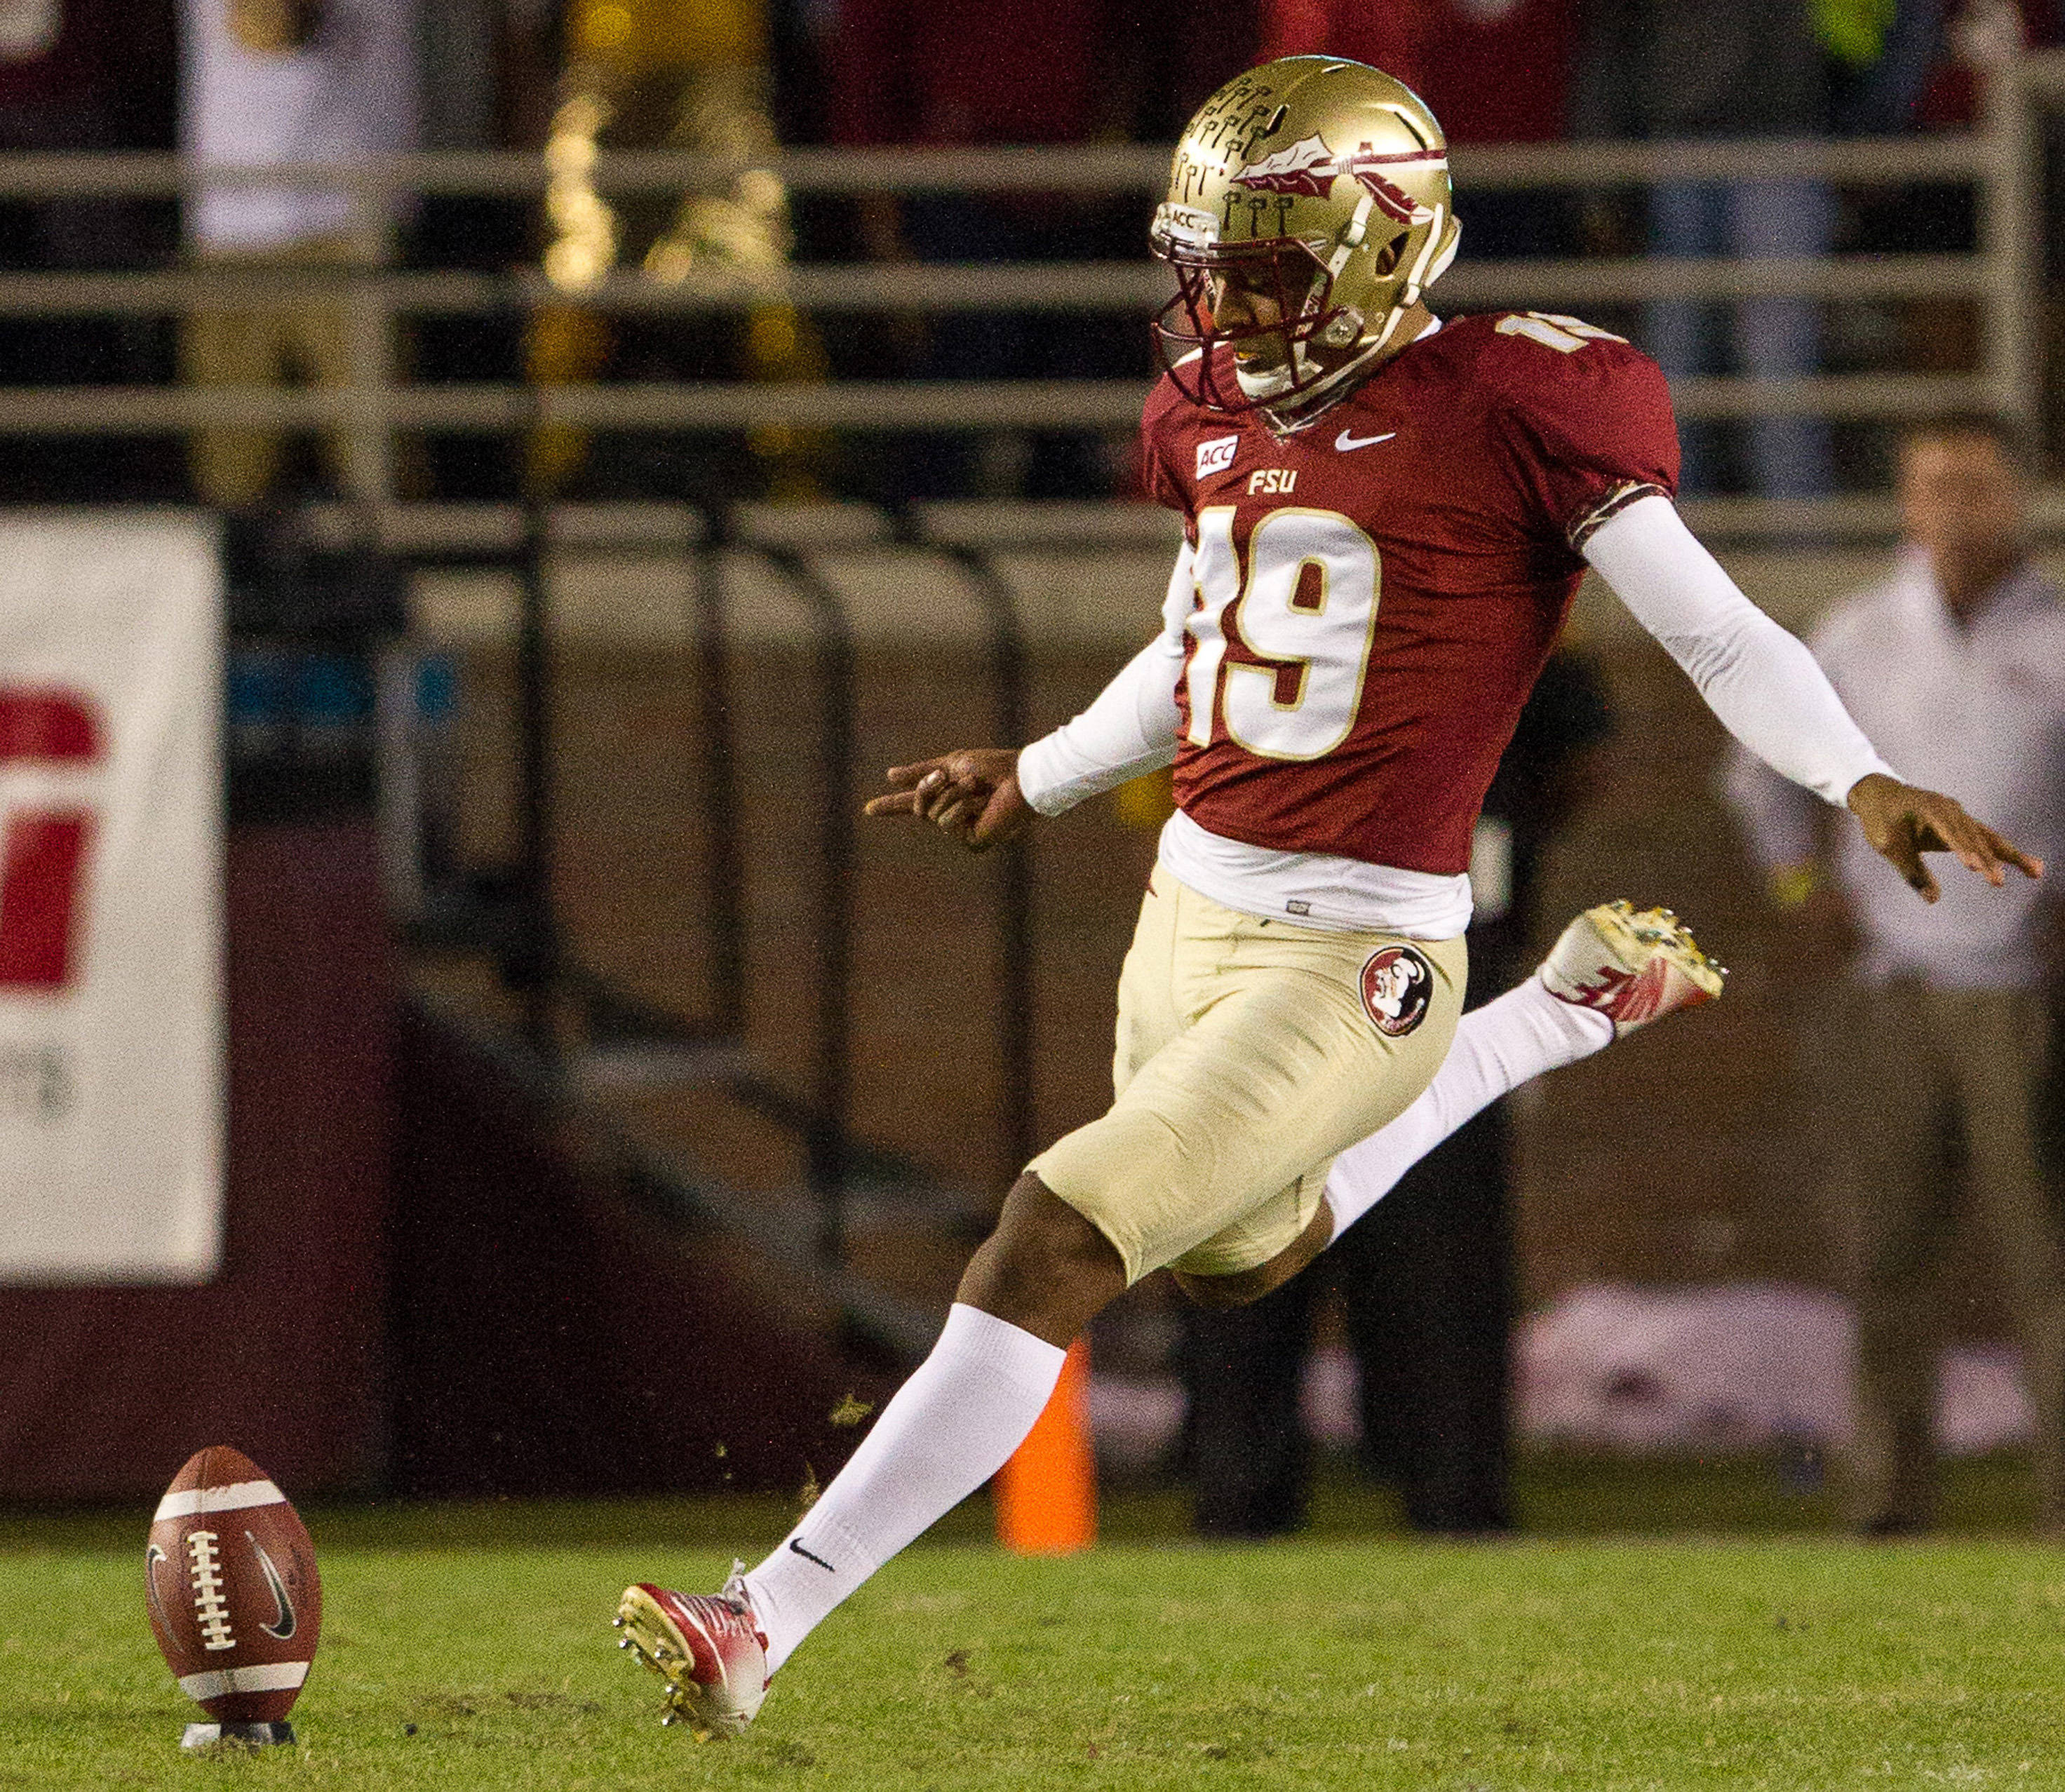 Roberto Aguayo (19) kicks off during FSU football's 41-14 win over Miami on Saturday, November 2, 2013 in Tallahassee, Fla. Photo by Michael Schwarz.